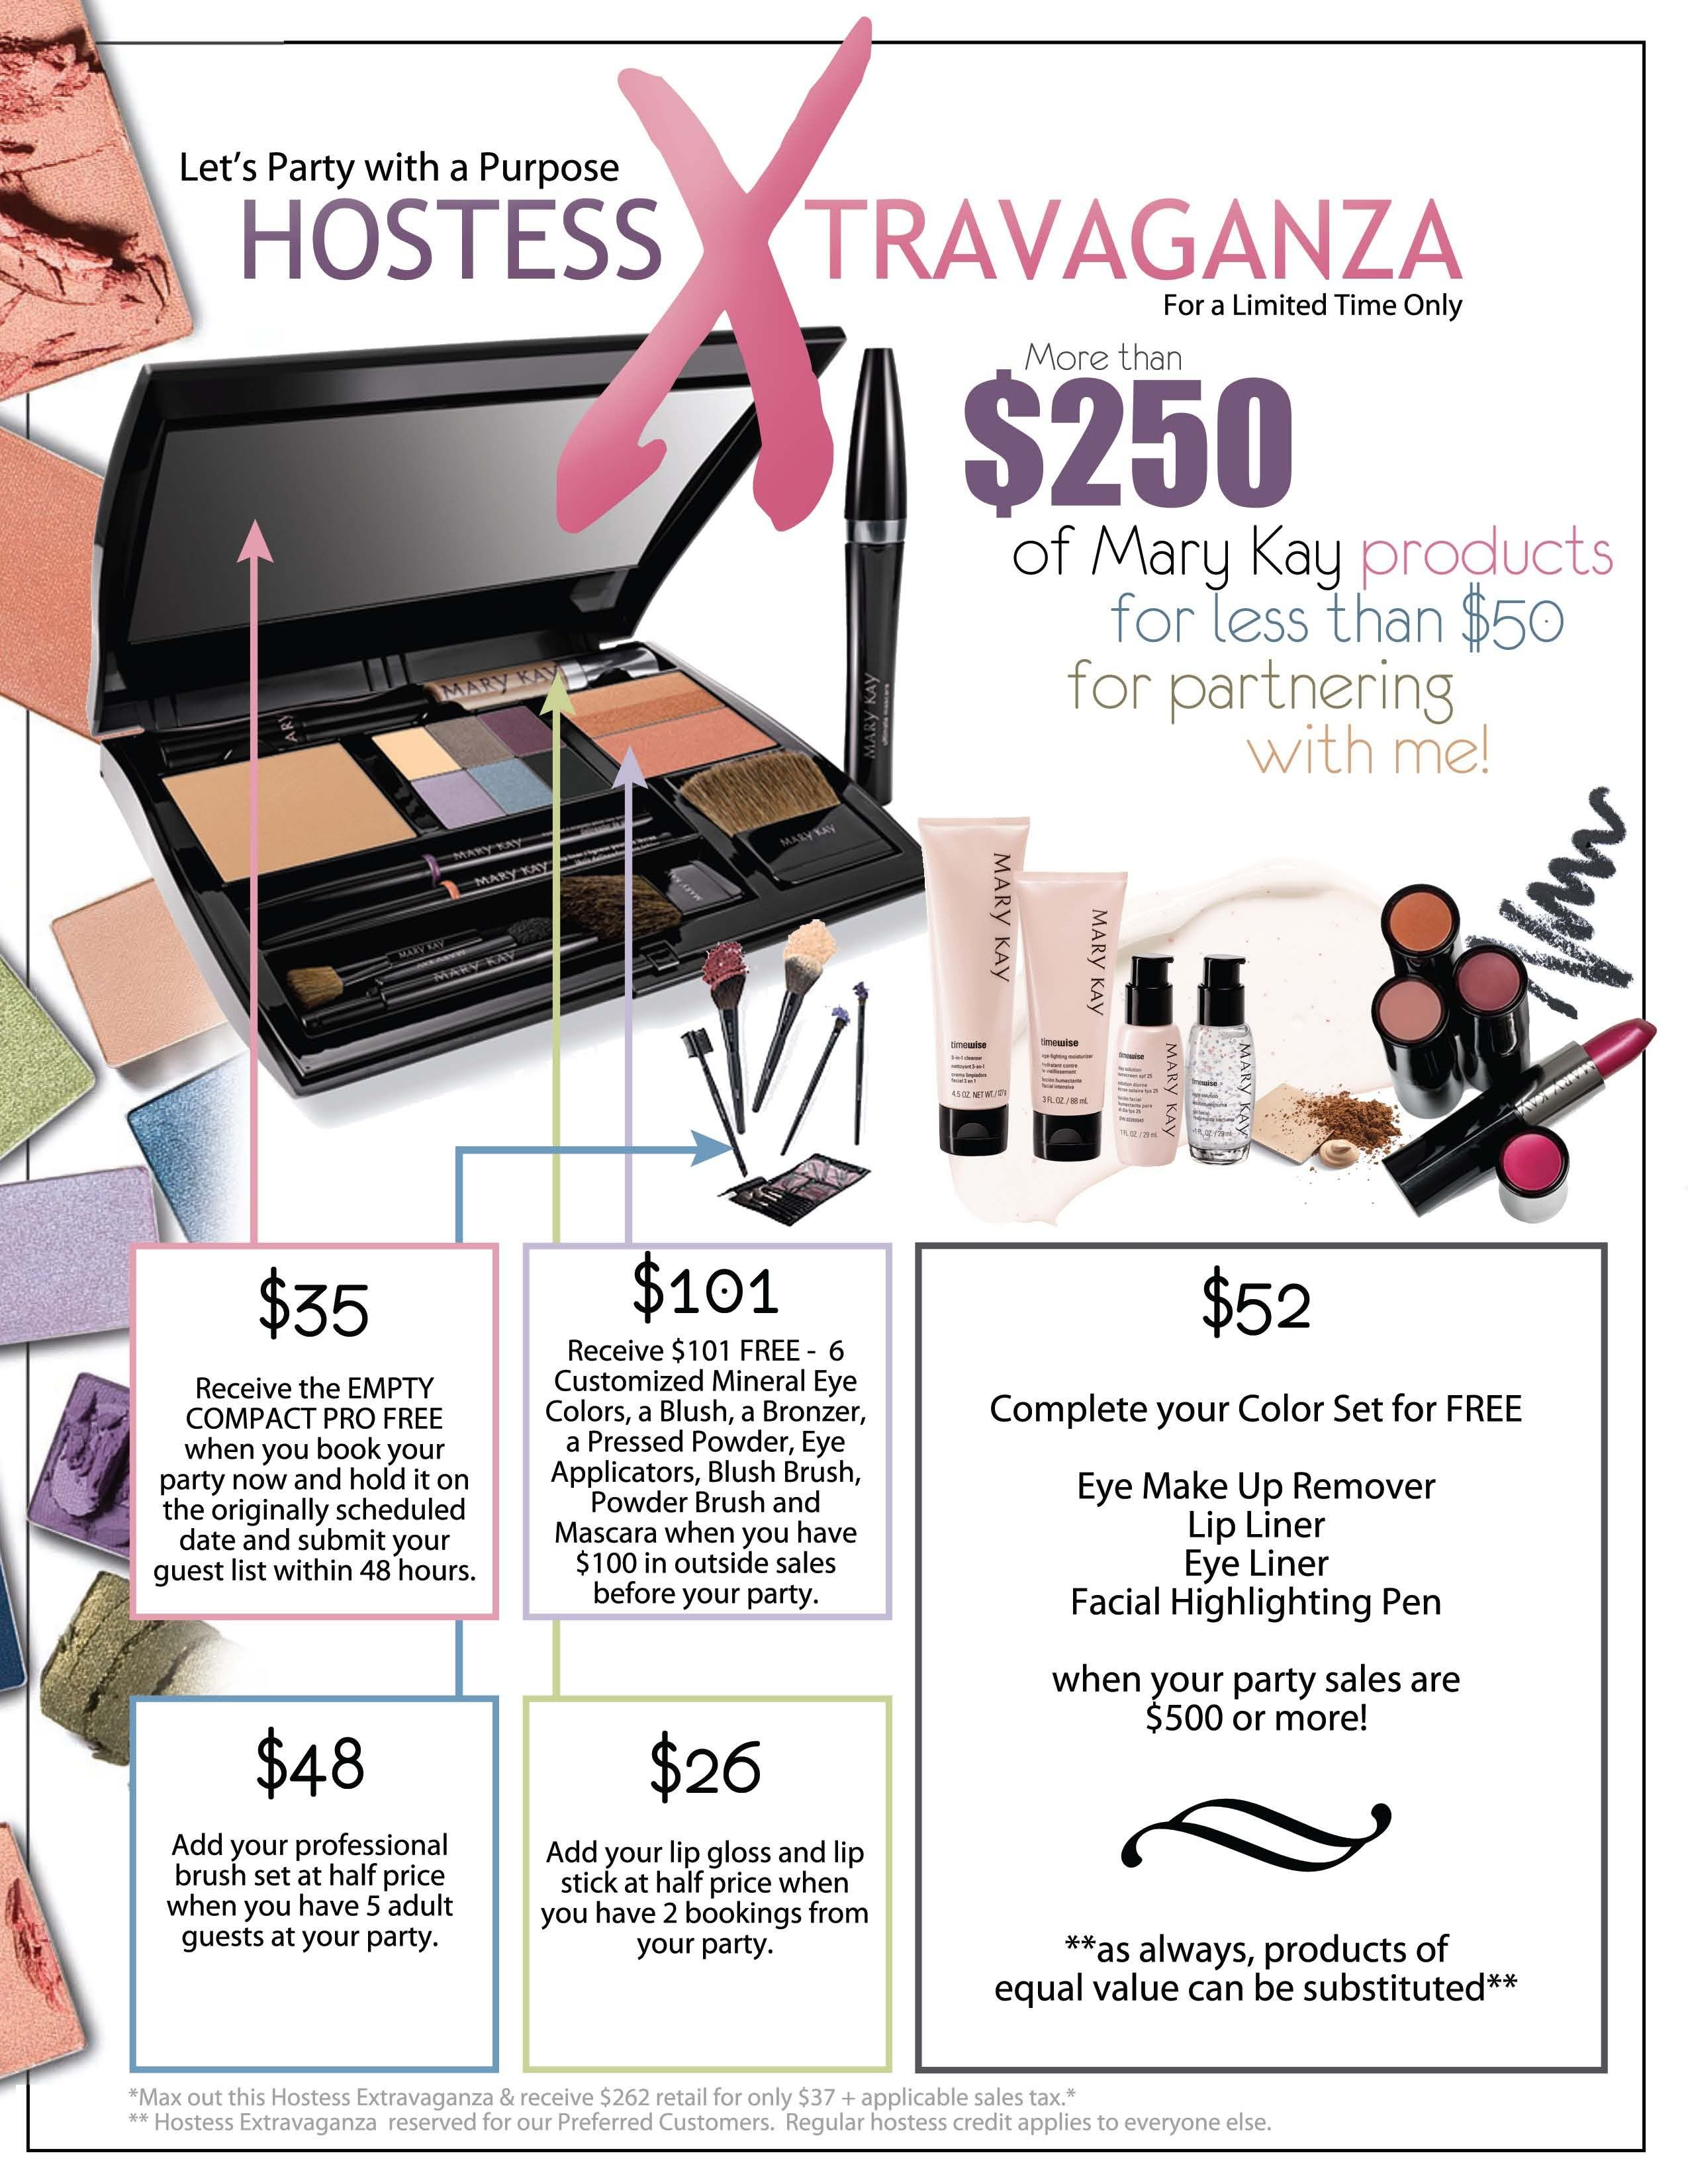 Mary kay sale flyer ideas -  Free Products Anytime Exclusive Mary Kay Specials Host A Party Get Free Product Seattle Area Free